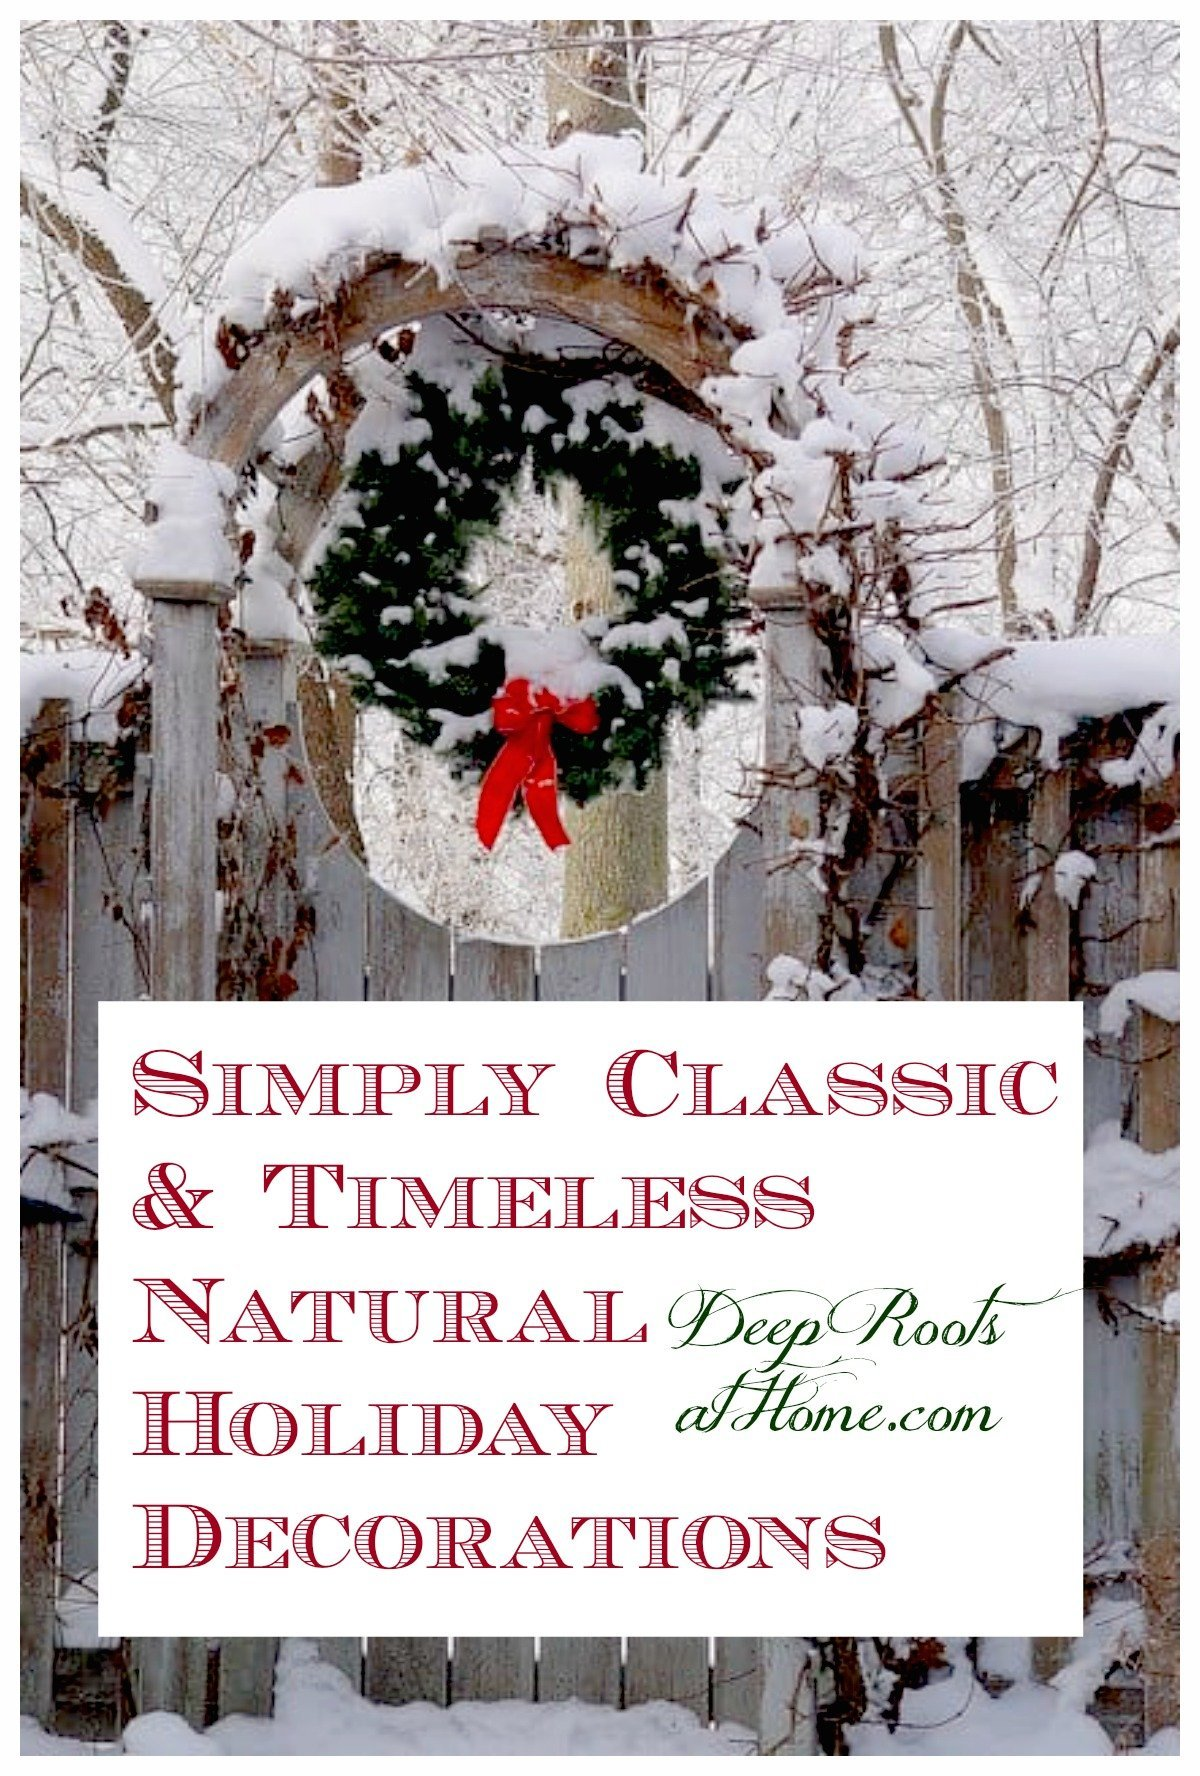 Simply Classic & Timeless Natural Holiday Decorations. Arched gateway with Christmas wreath